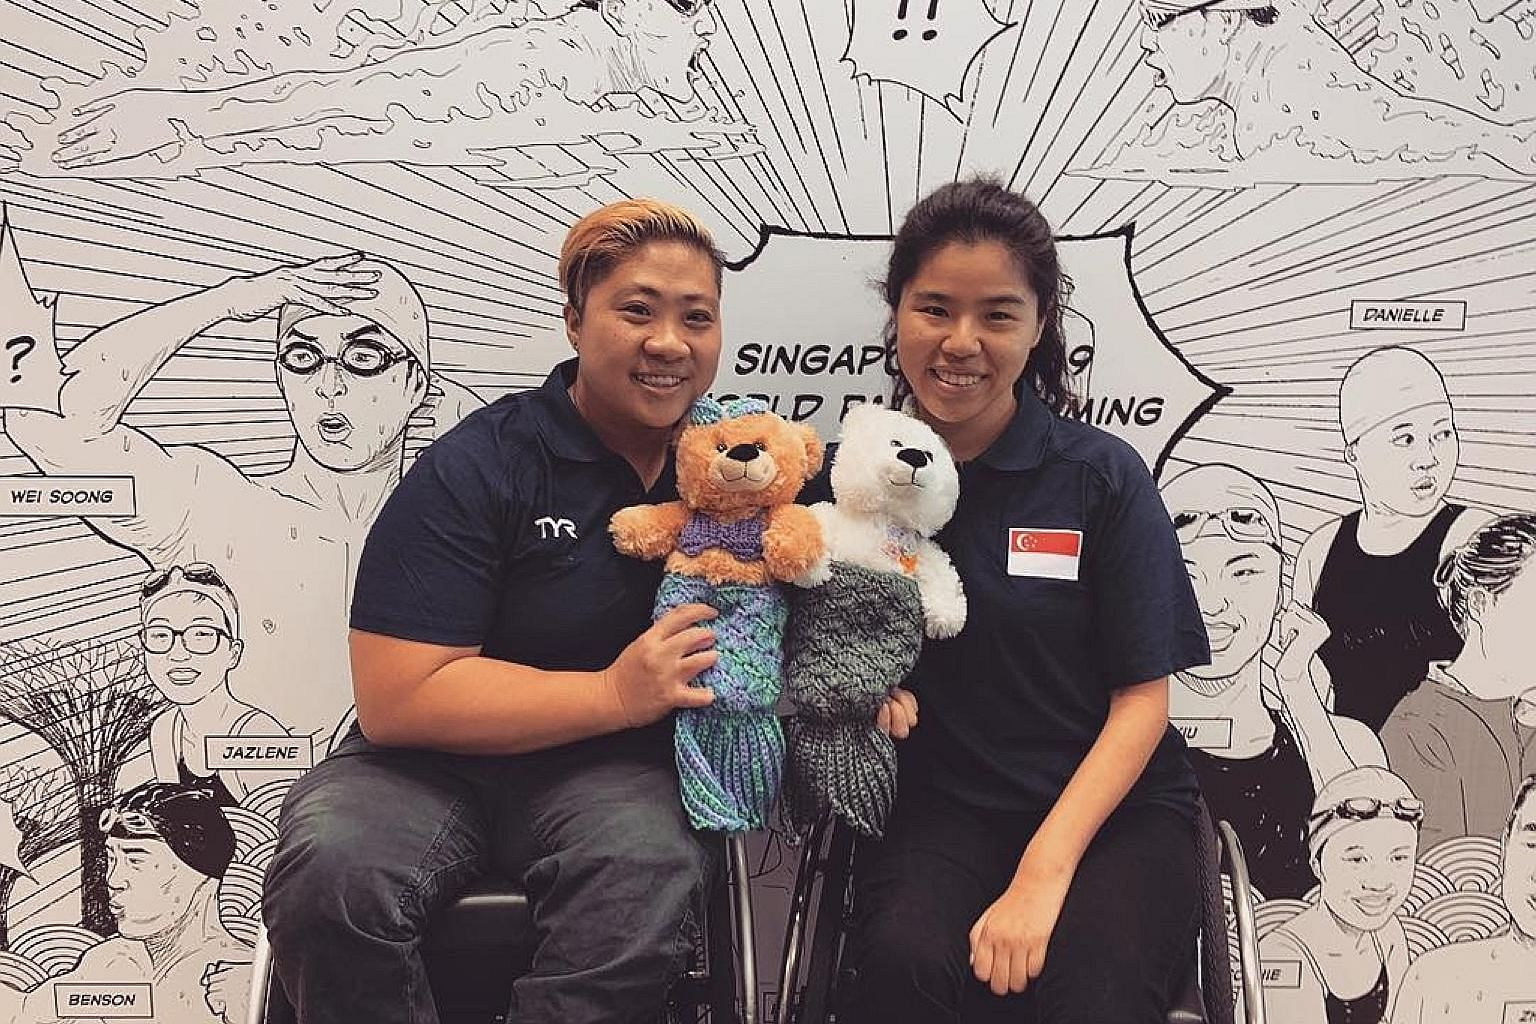 "SWEET TWEET ""#oneteamsg #worldparaswimming #bear #auction"" Singapore's para swimmers Theresa Goh and Yip Pin Xiu show off their narwhal and mermaid bears."